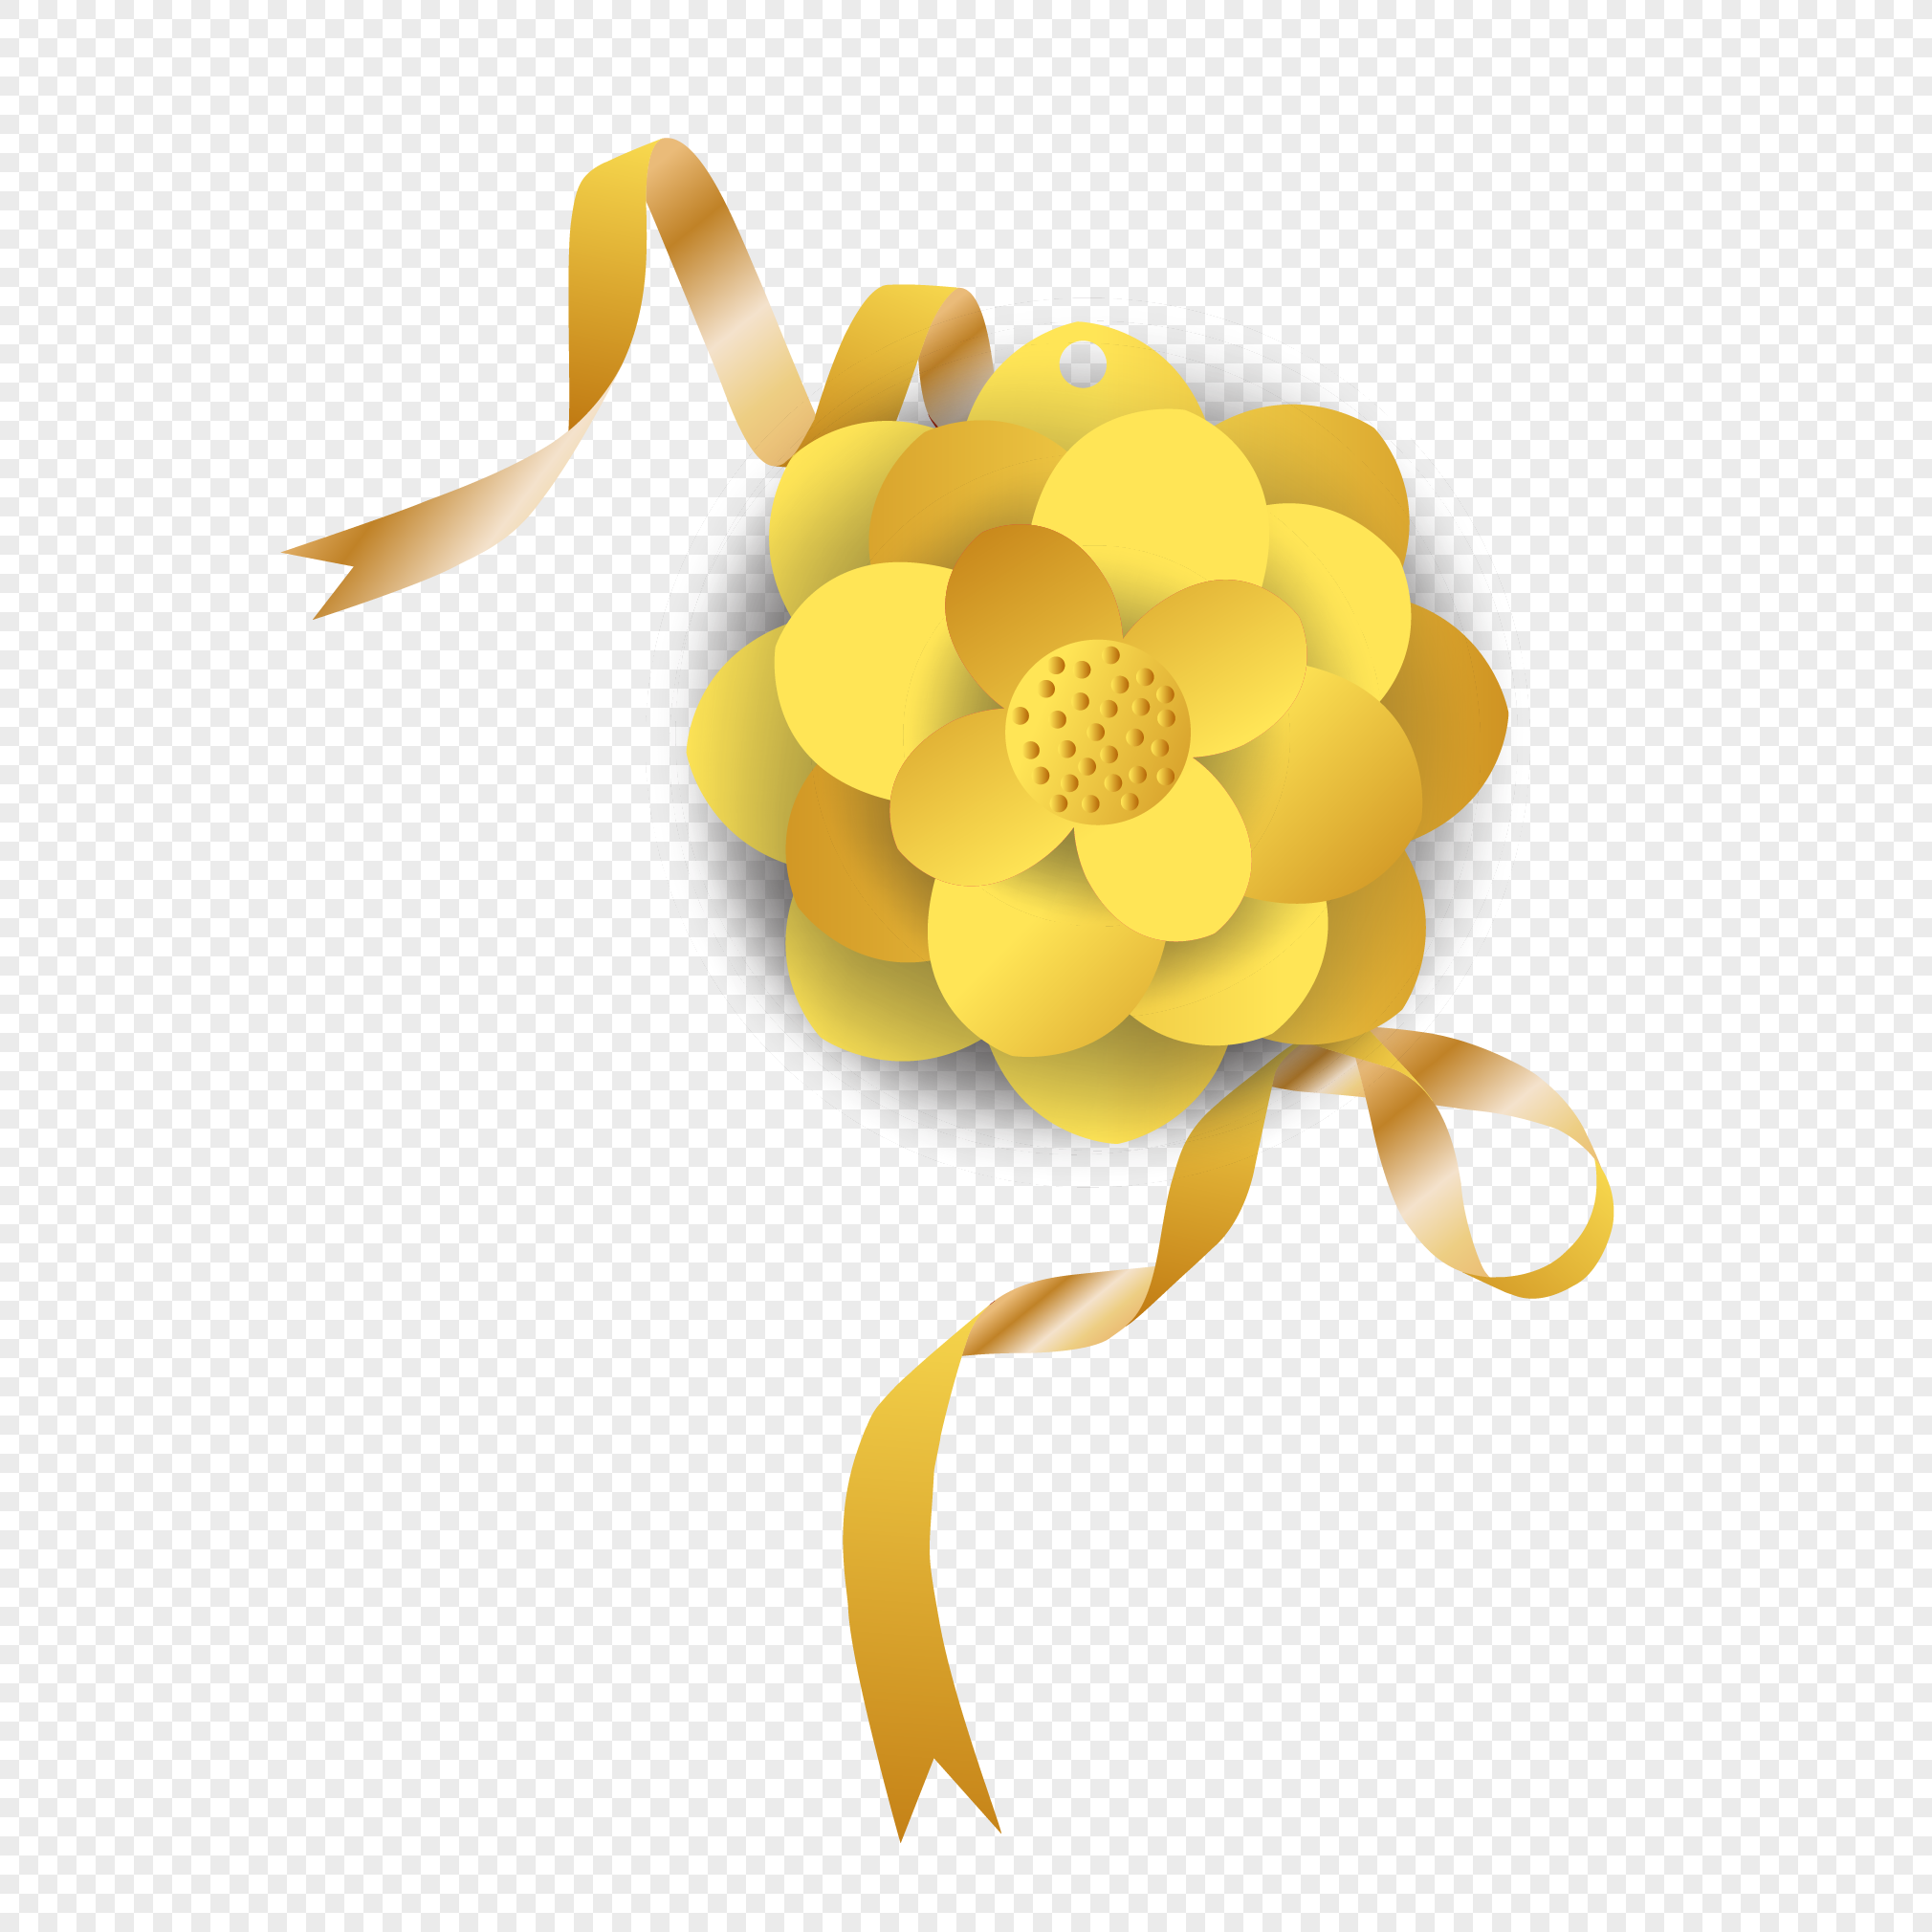 Yellow Flower Paper Cutting Png Imagepicture Free Download